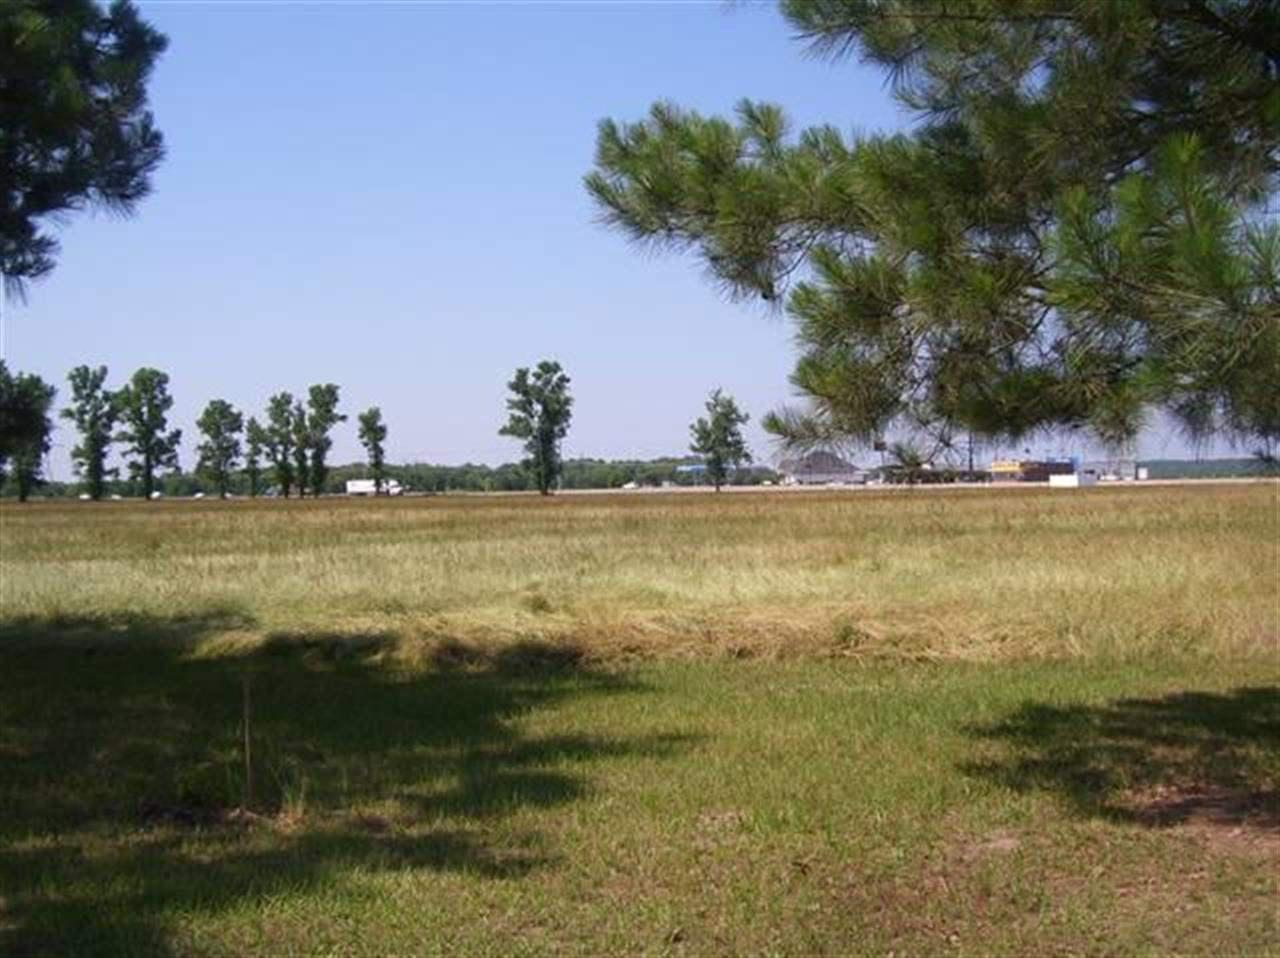 Lot 22 KINGSFIELD LOOP ROAD, 135 HWY 165 N Egrets Landing Ste